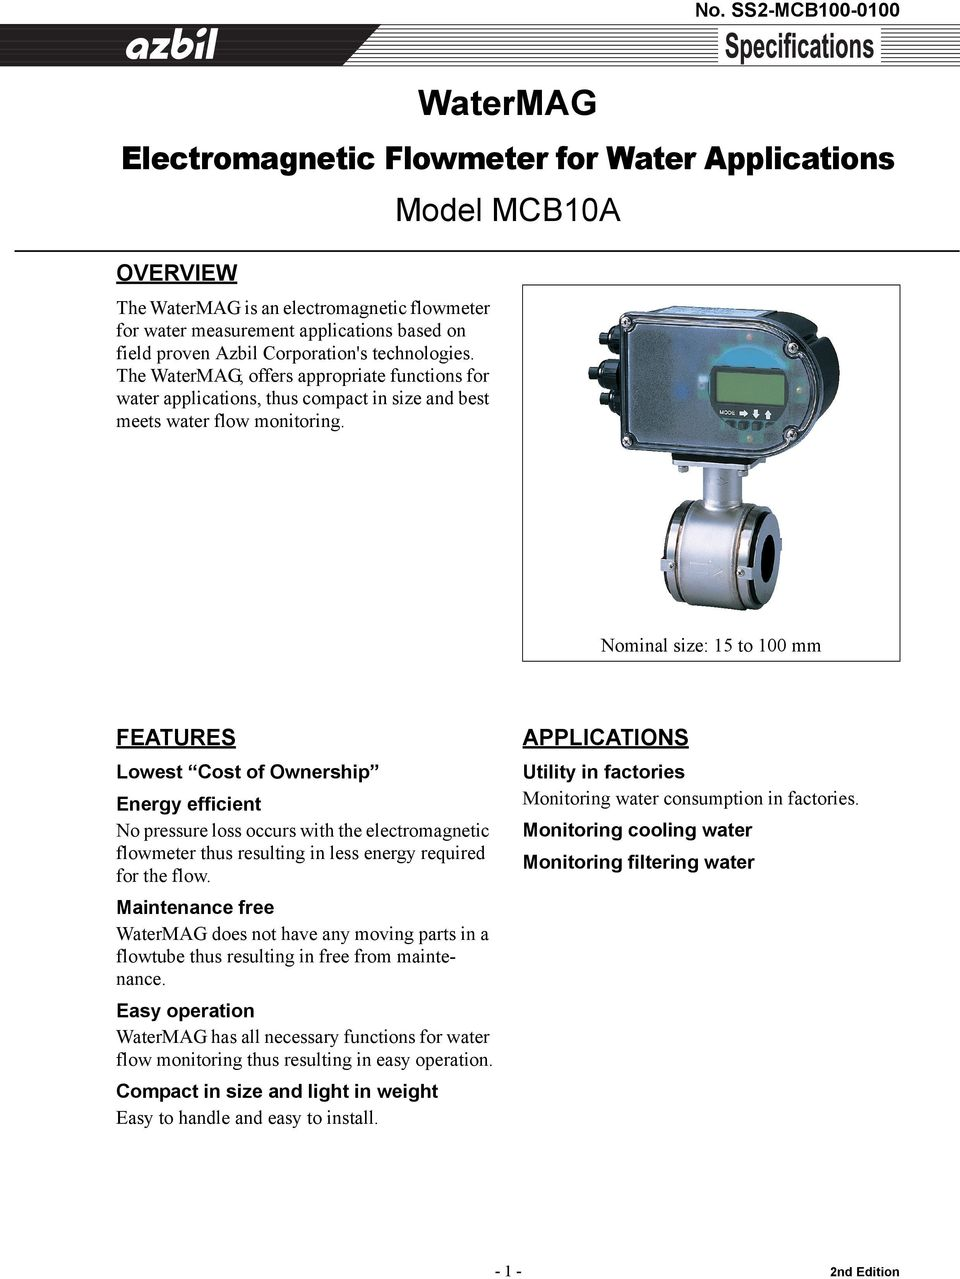 Model MCB10A Nominal size: 15 to 100 mm FEATURES Lowest Cost of Ownership Energy efficient No pressure loss occurs with the electromagnetic flowmeter thus resulting in less energy required for the